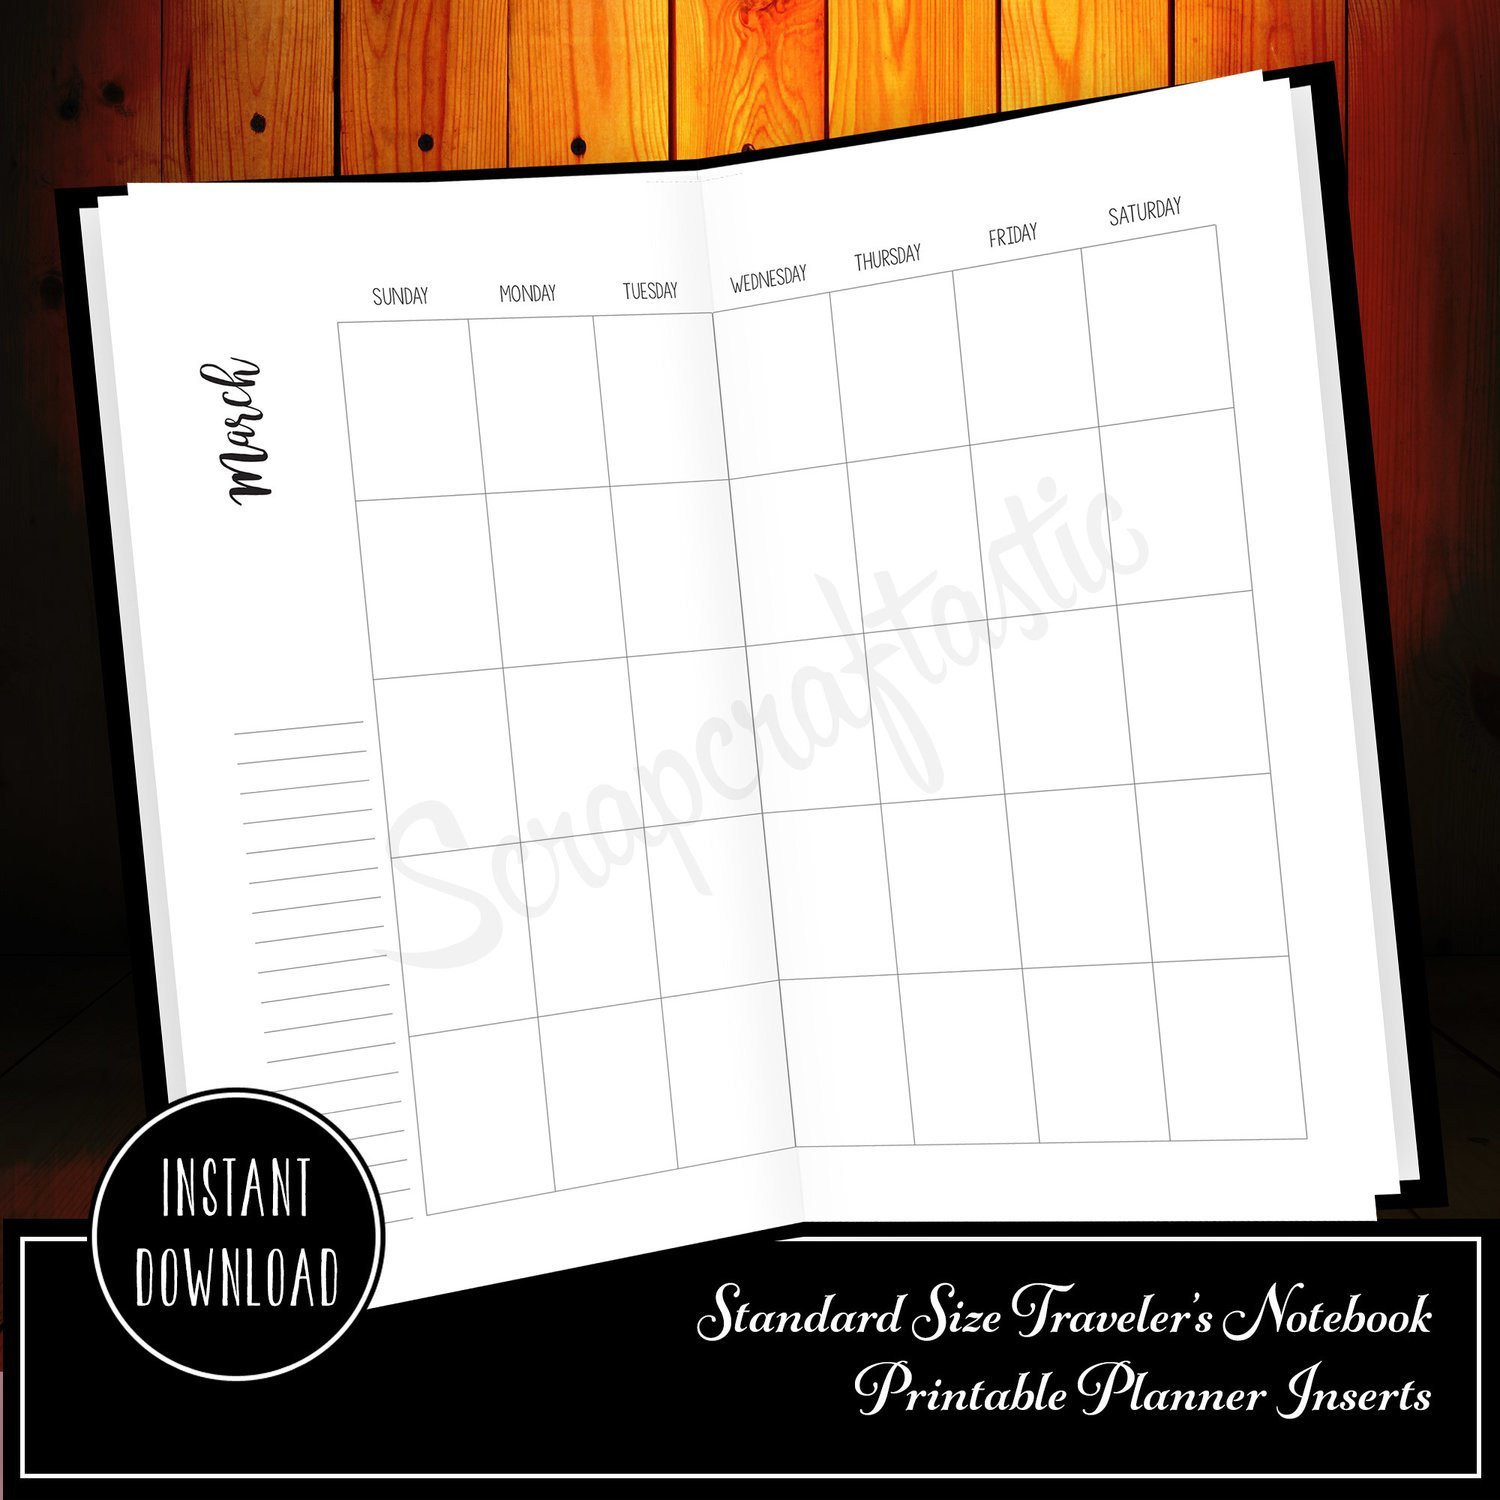 One Year of Monthly Inserts (MO2P) - Regular/Standard Size Traveler's Notebook Printable Inserts